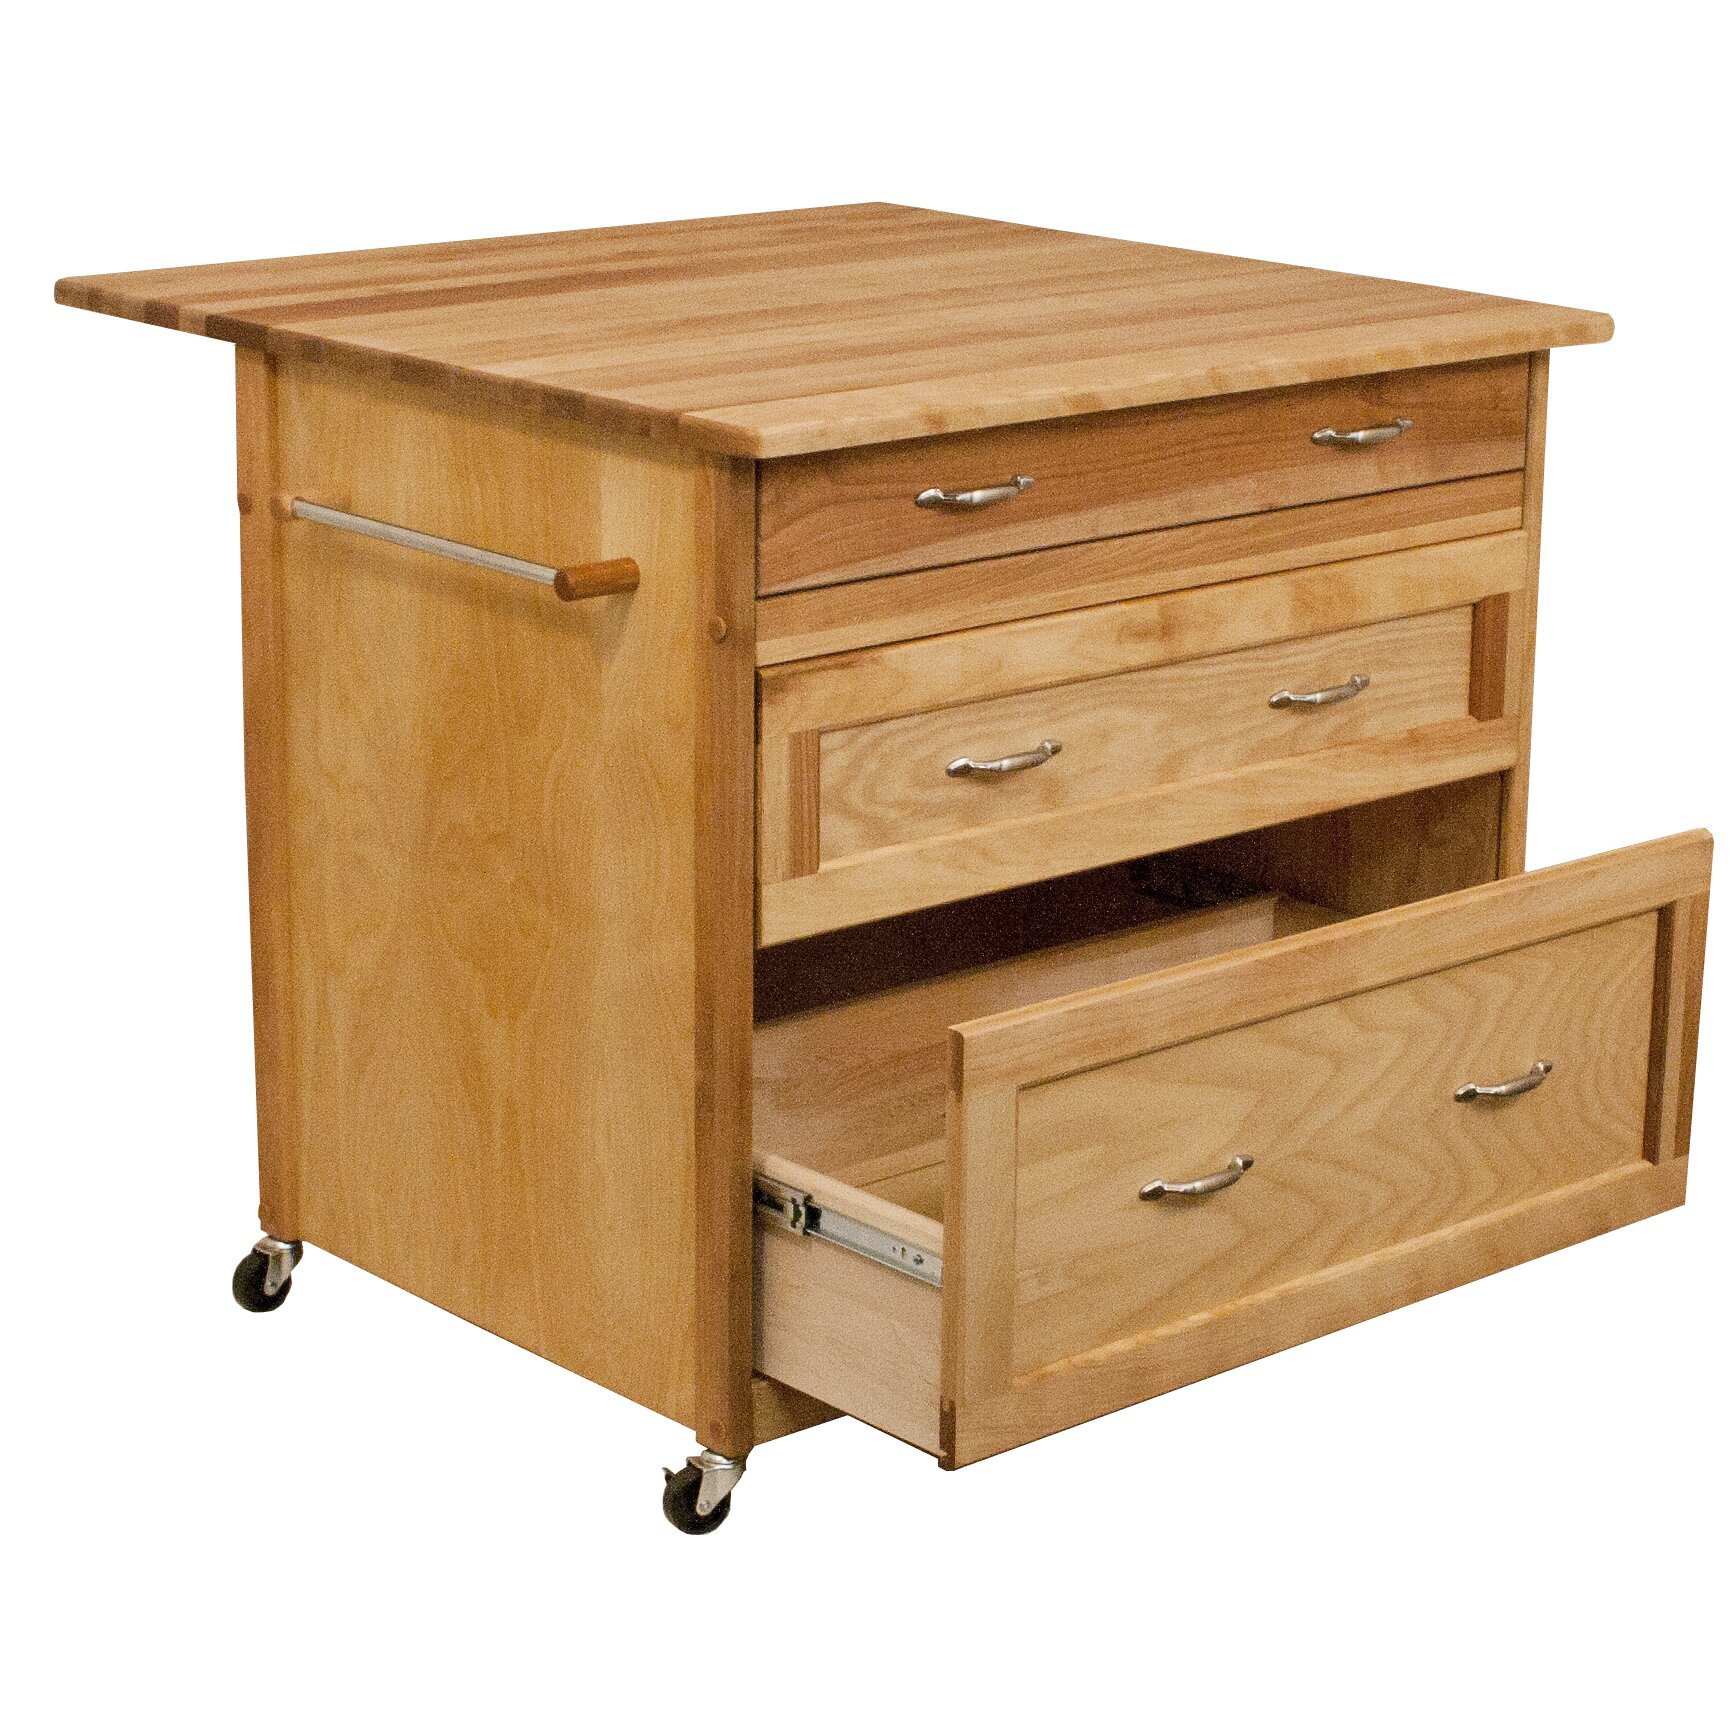 catskill craftsmen kitchen island catskill craftsmen kitchen island with wood top amp reviews 5141